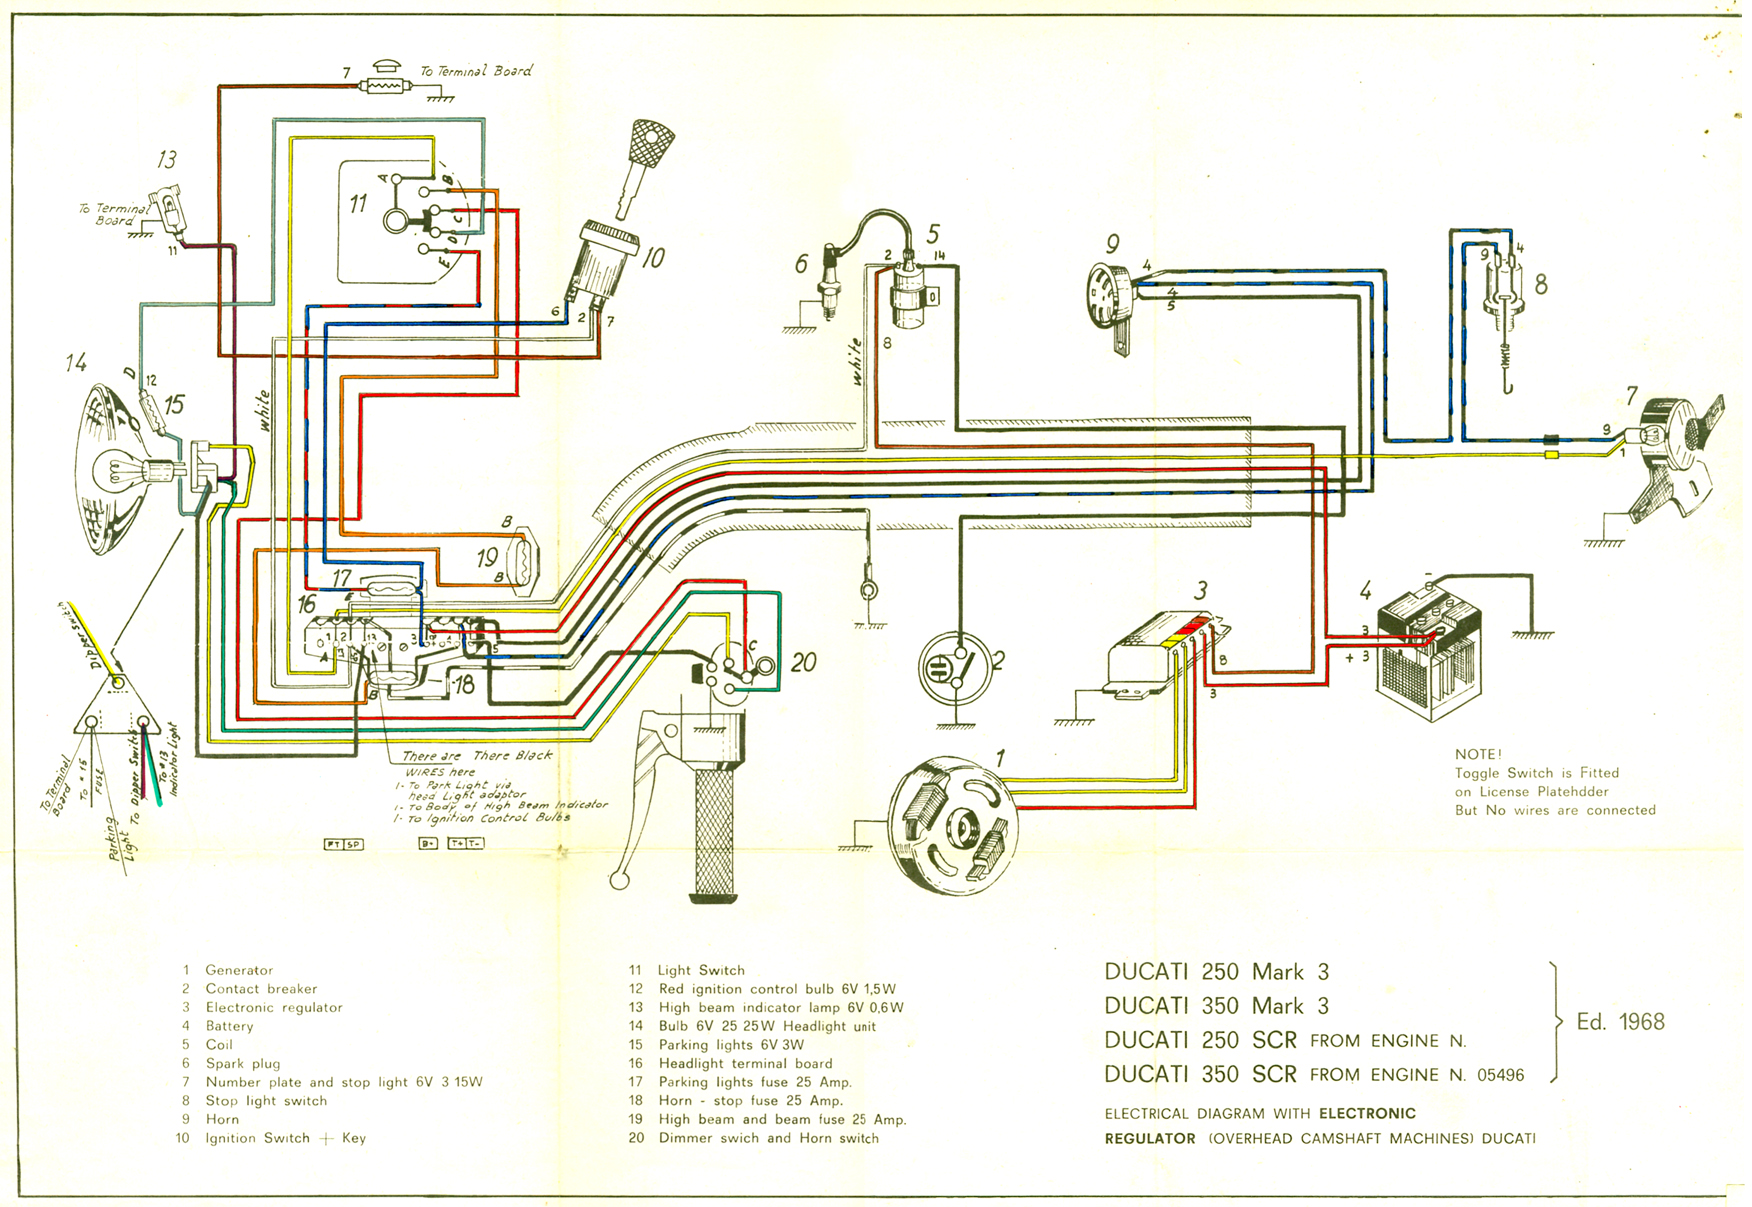 Astounding 1974 Honda Xl250 Wiring Diagram Ideas Best Image Wiring 1971 Honda XL 250 1974 Honda